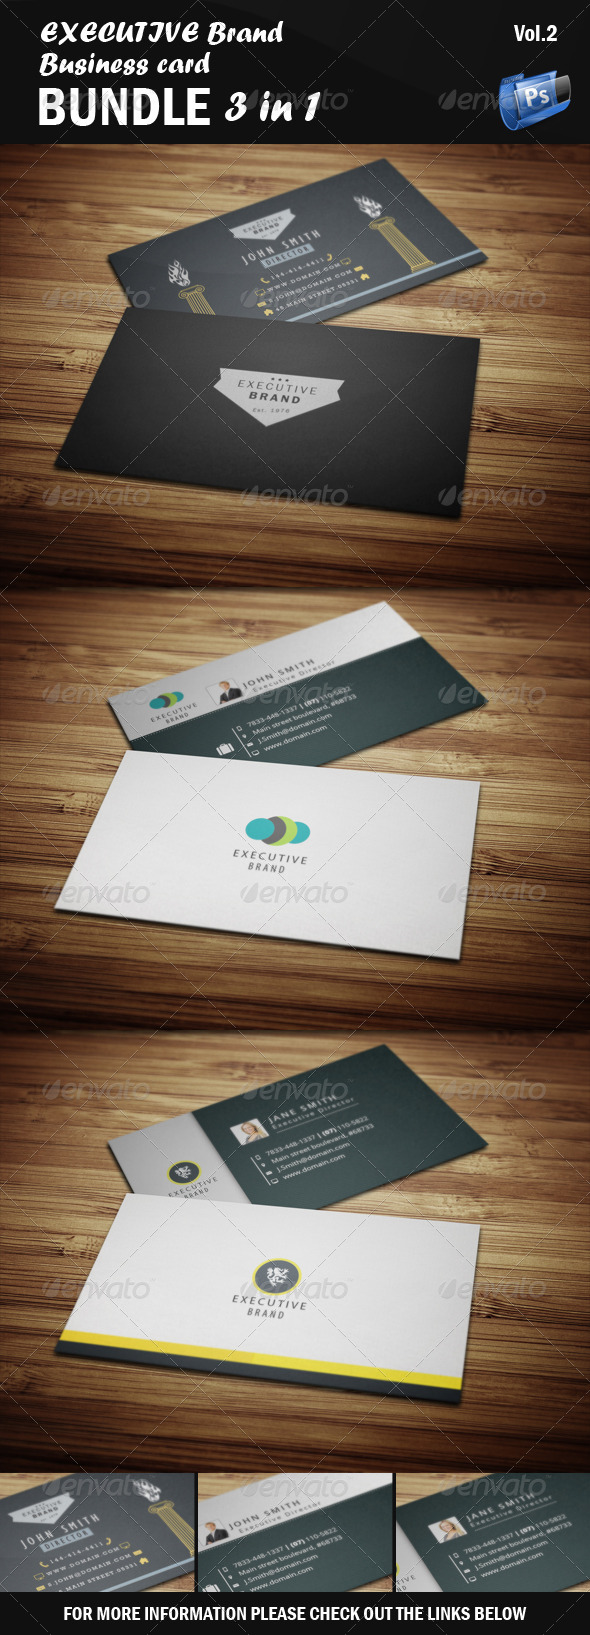 Executive business card bundle 3 in 1 vol2 by vectormedia executive business card bundle 3 in 1 vol2 corporate business colourmoves